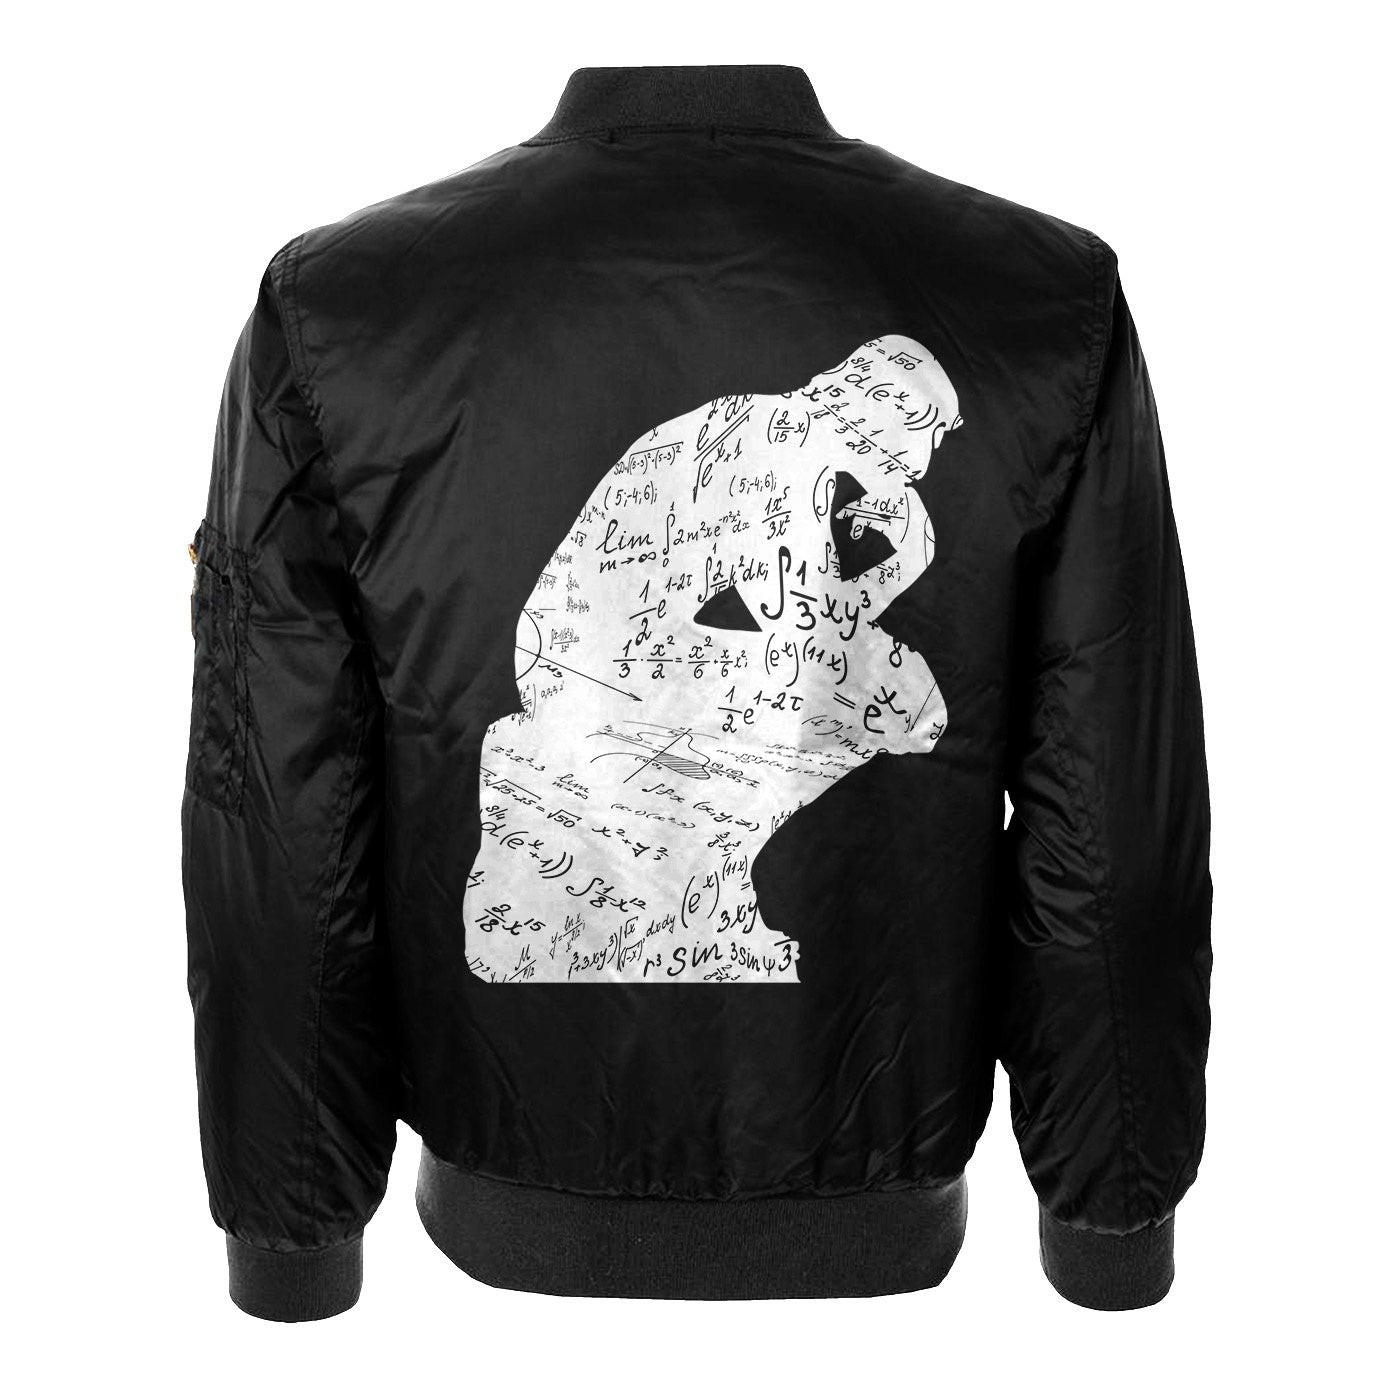 The Thinker Bomber Jacket